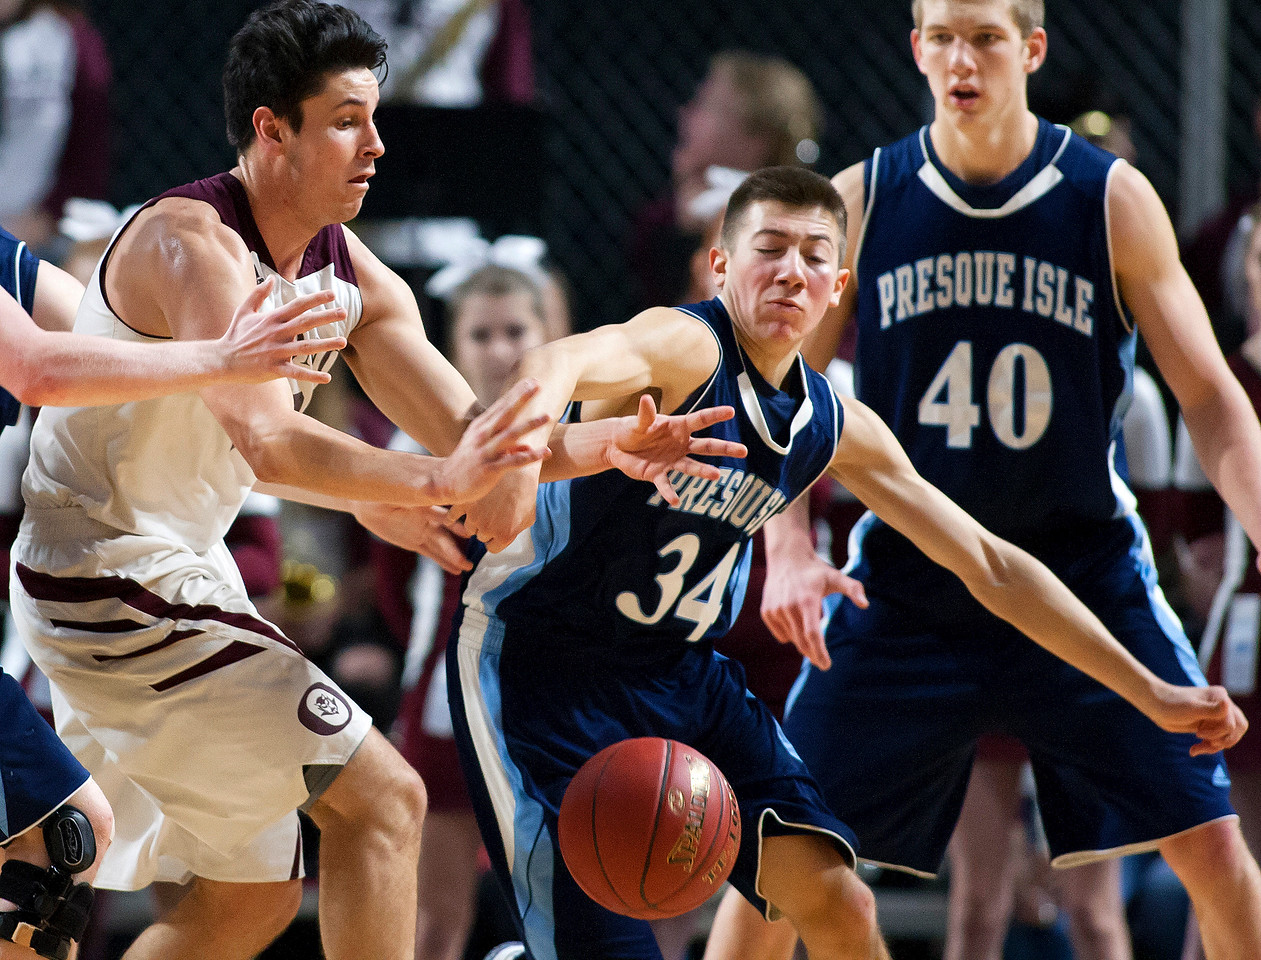 BANGOR, Maine -- 02/18/2017 -- Presque Isle's Jonah G. Hudson (right) steals the ball from Orono's Nate Desisto during their Class B boys basketball quarterfinal game at the Cross Insurance Center in Bangor Saturday. Ashley L. Conti | BDN